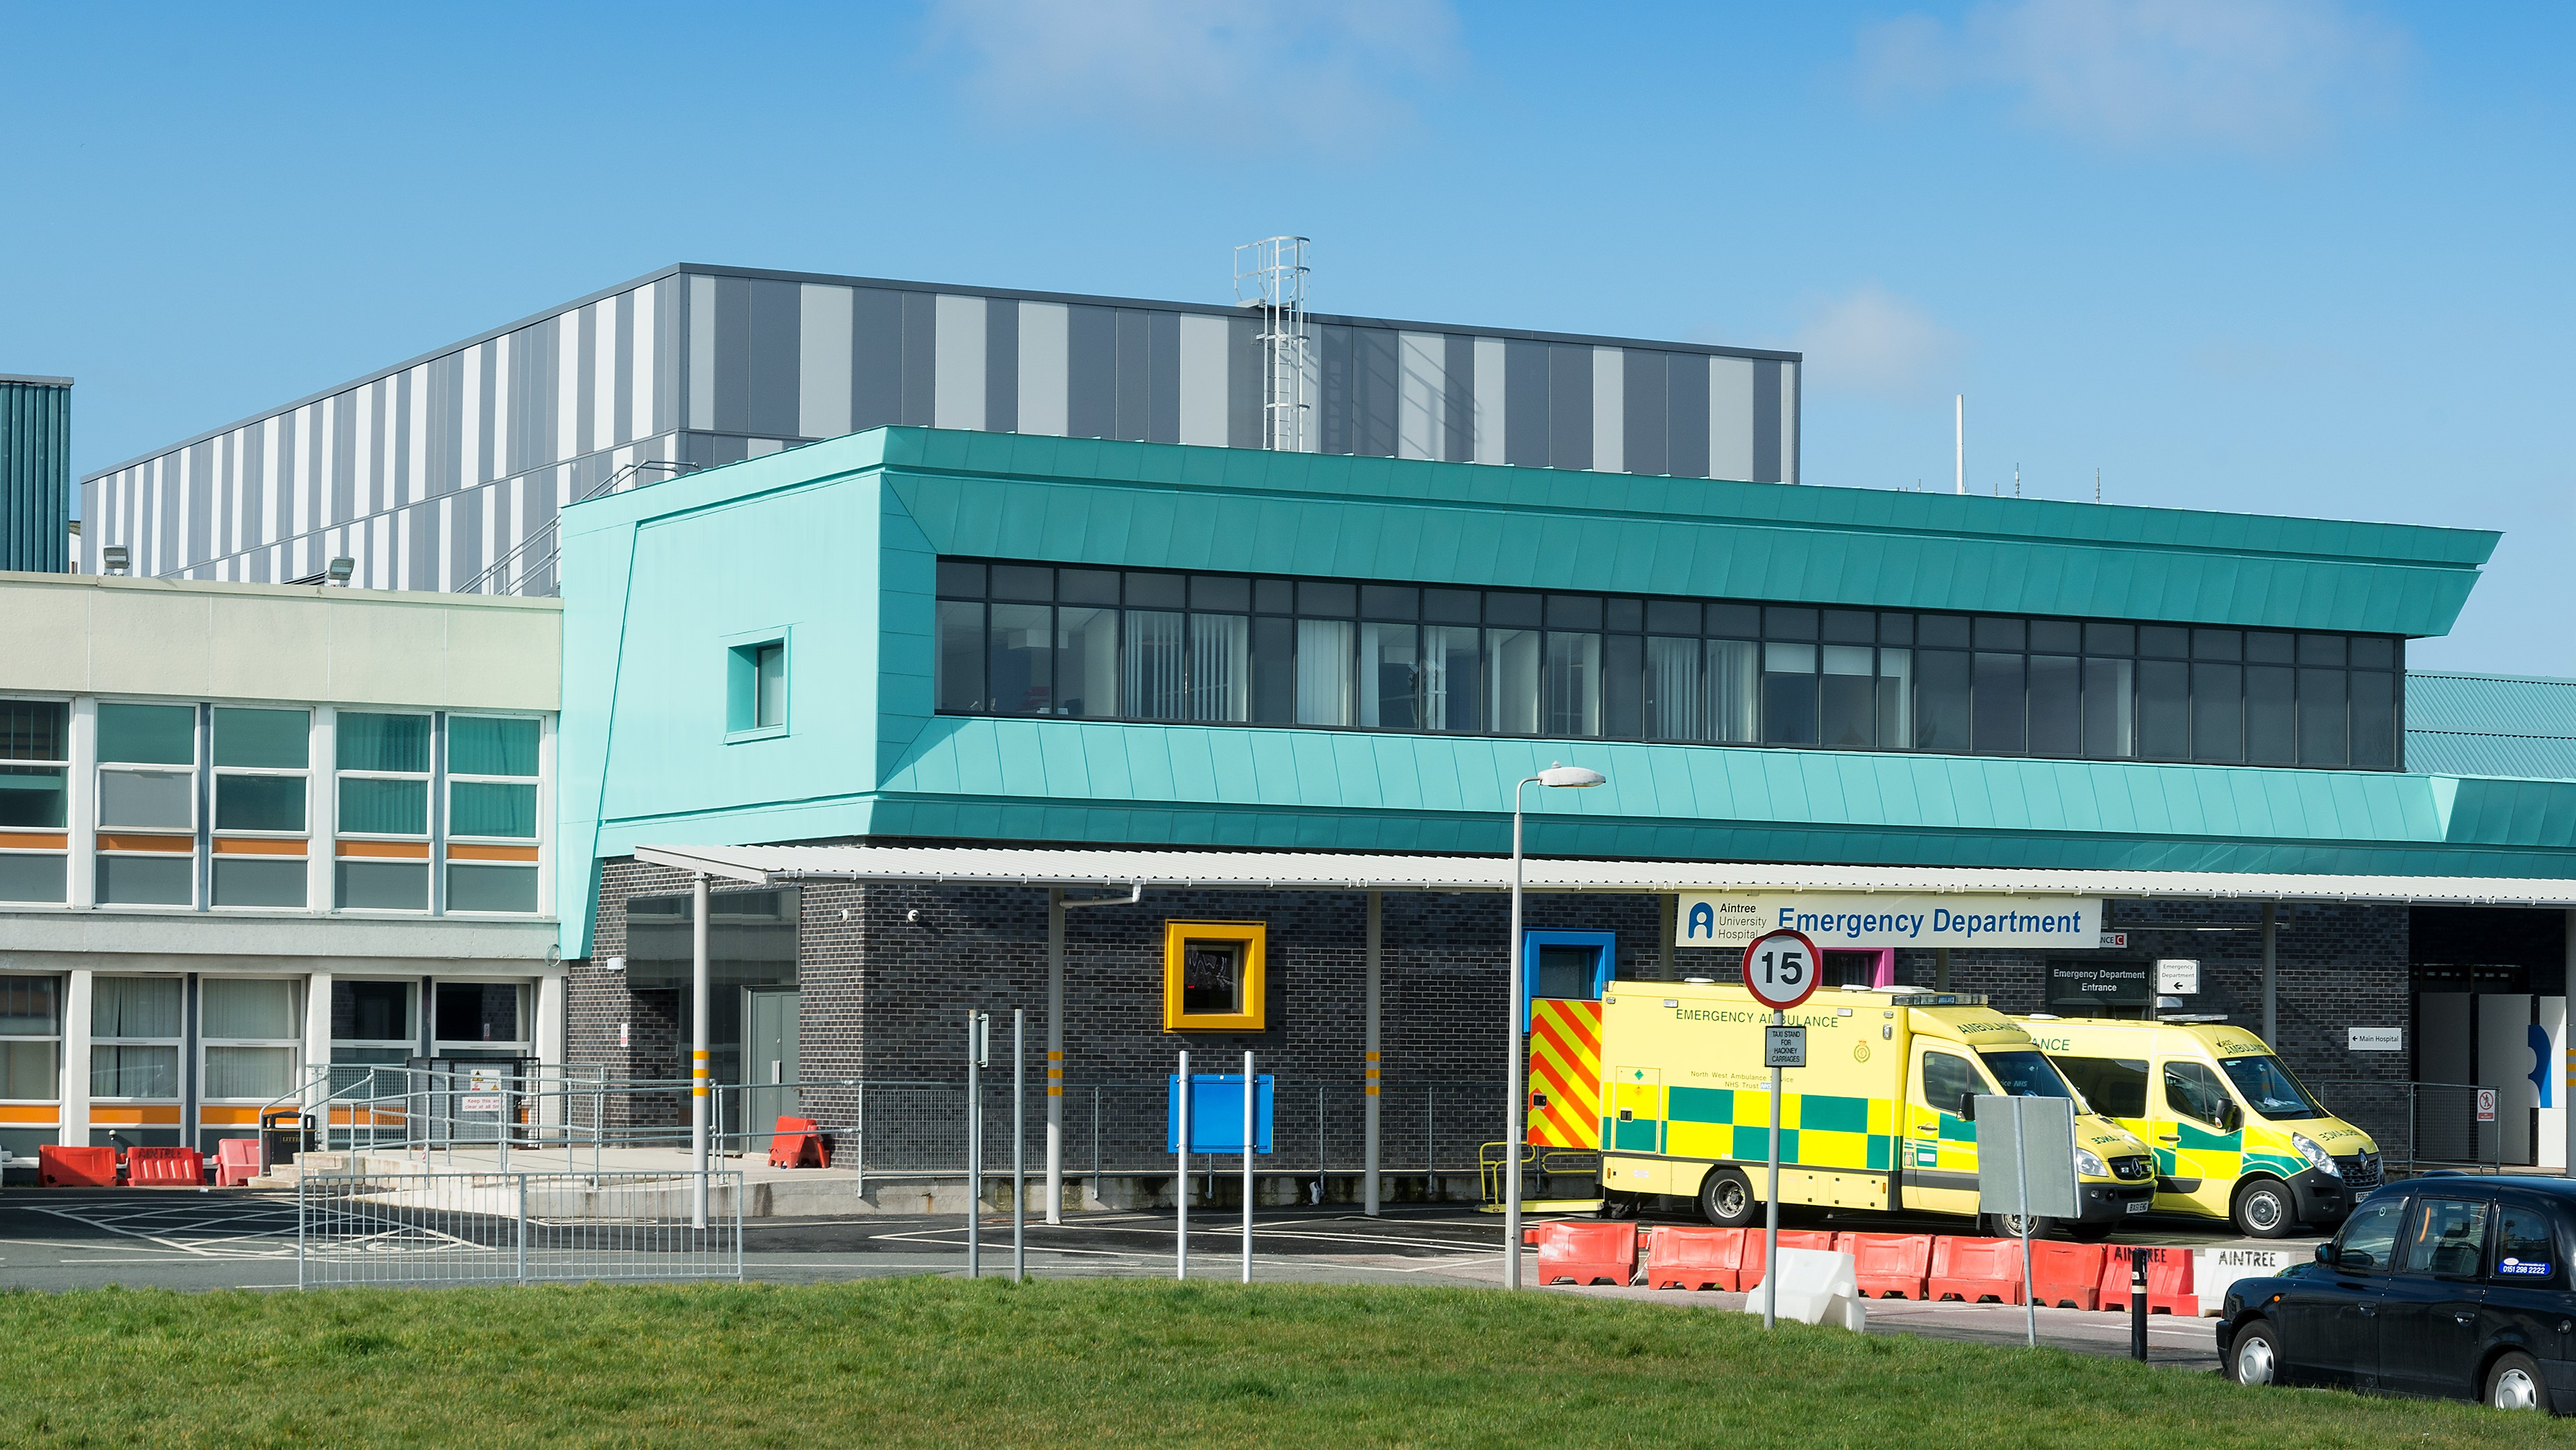 Aintree Hospital Reynolux Roofing Cladding Longworth Aintree Hospital Liverpool Fatra Optimo Traditional Textures (3)